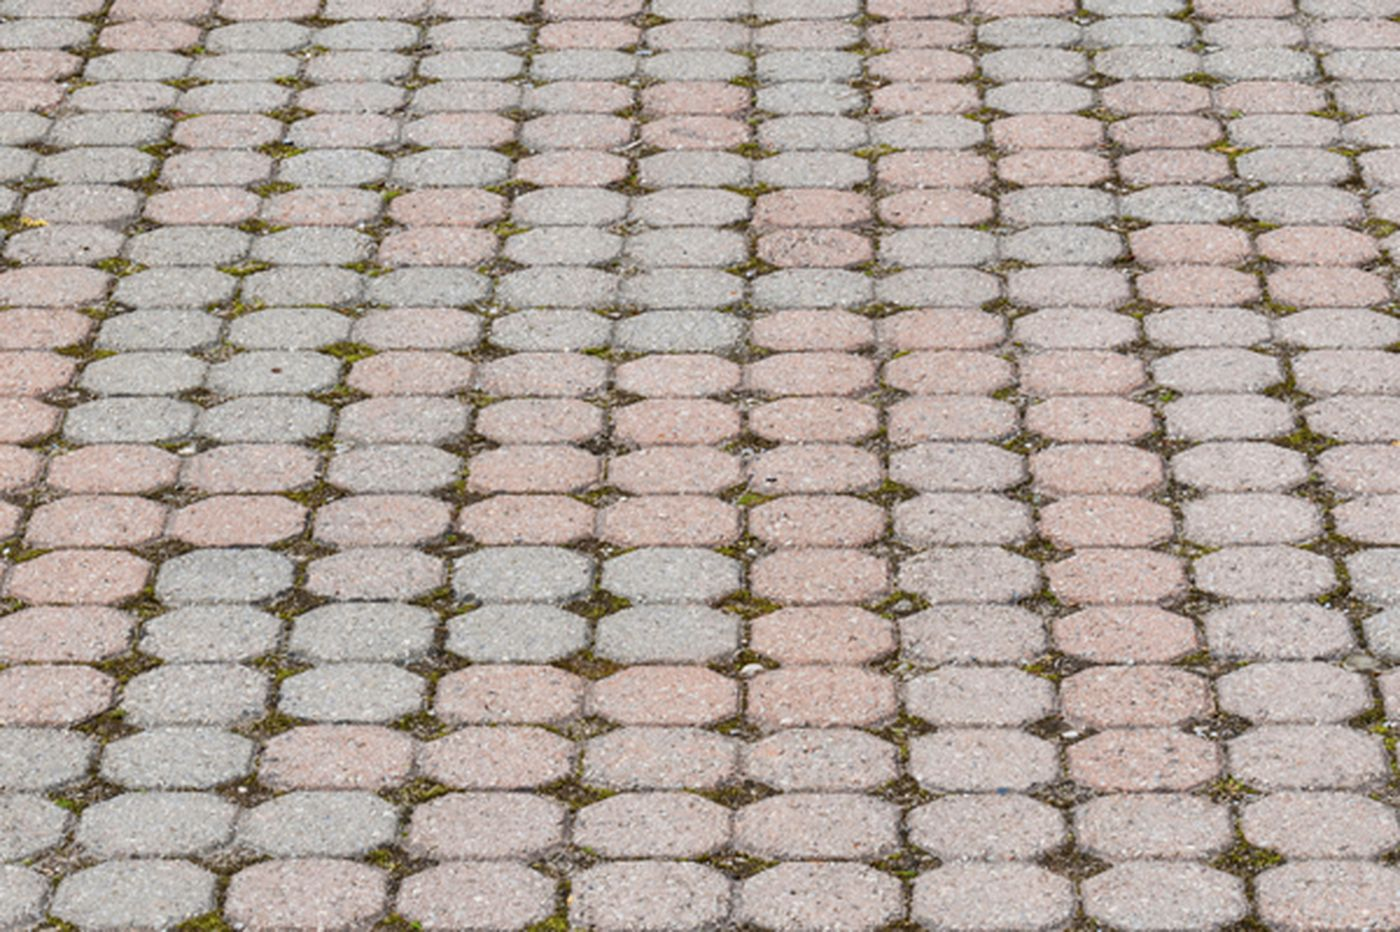 Your Place: Patio floor needs some attention